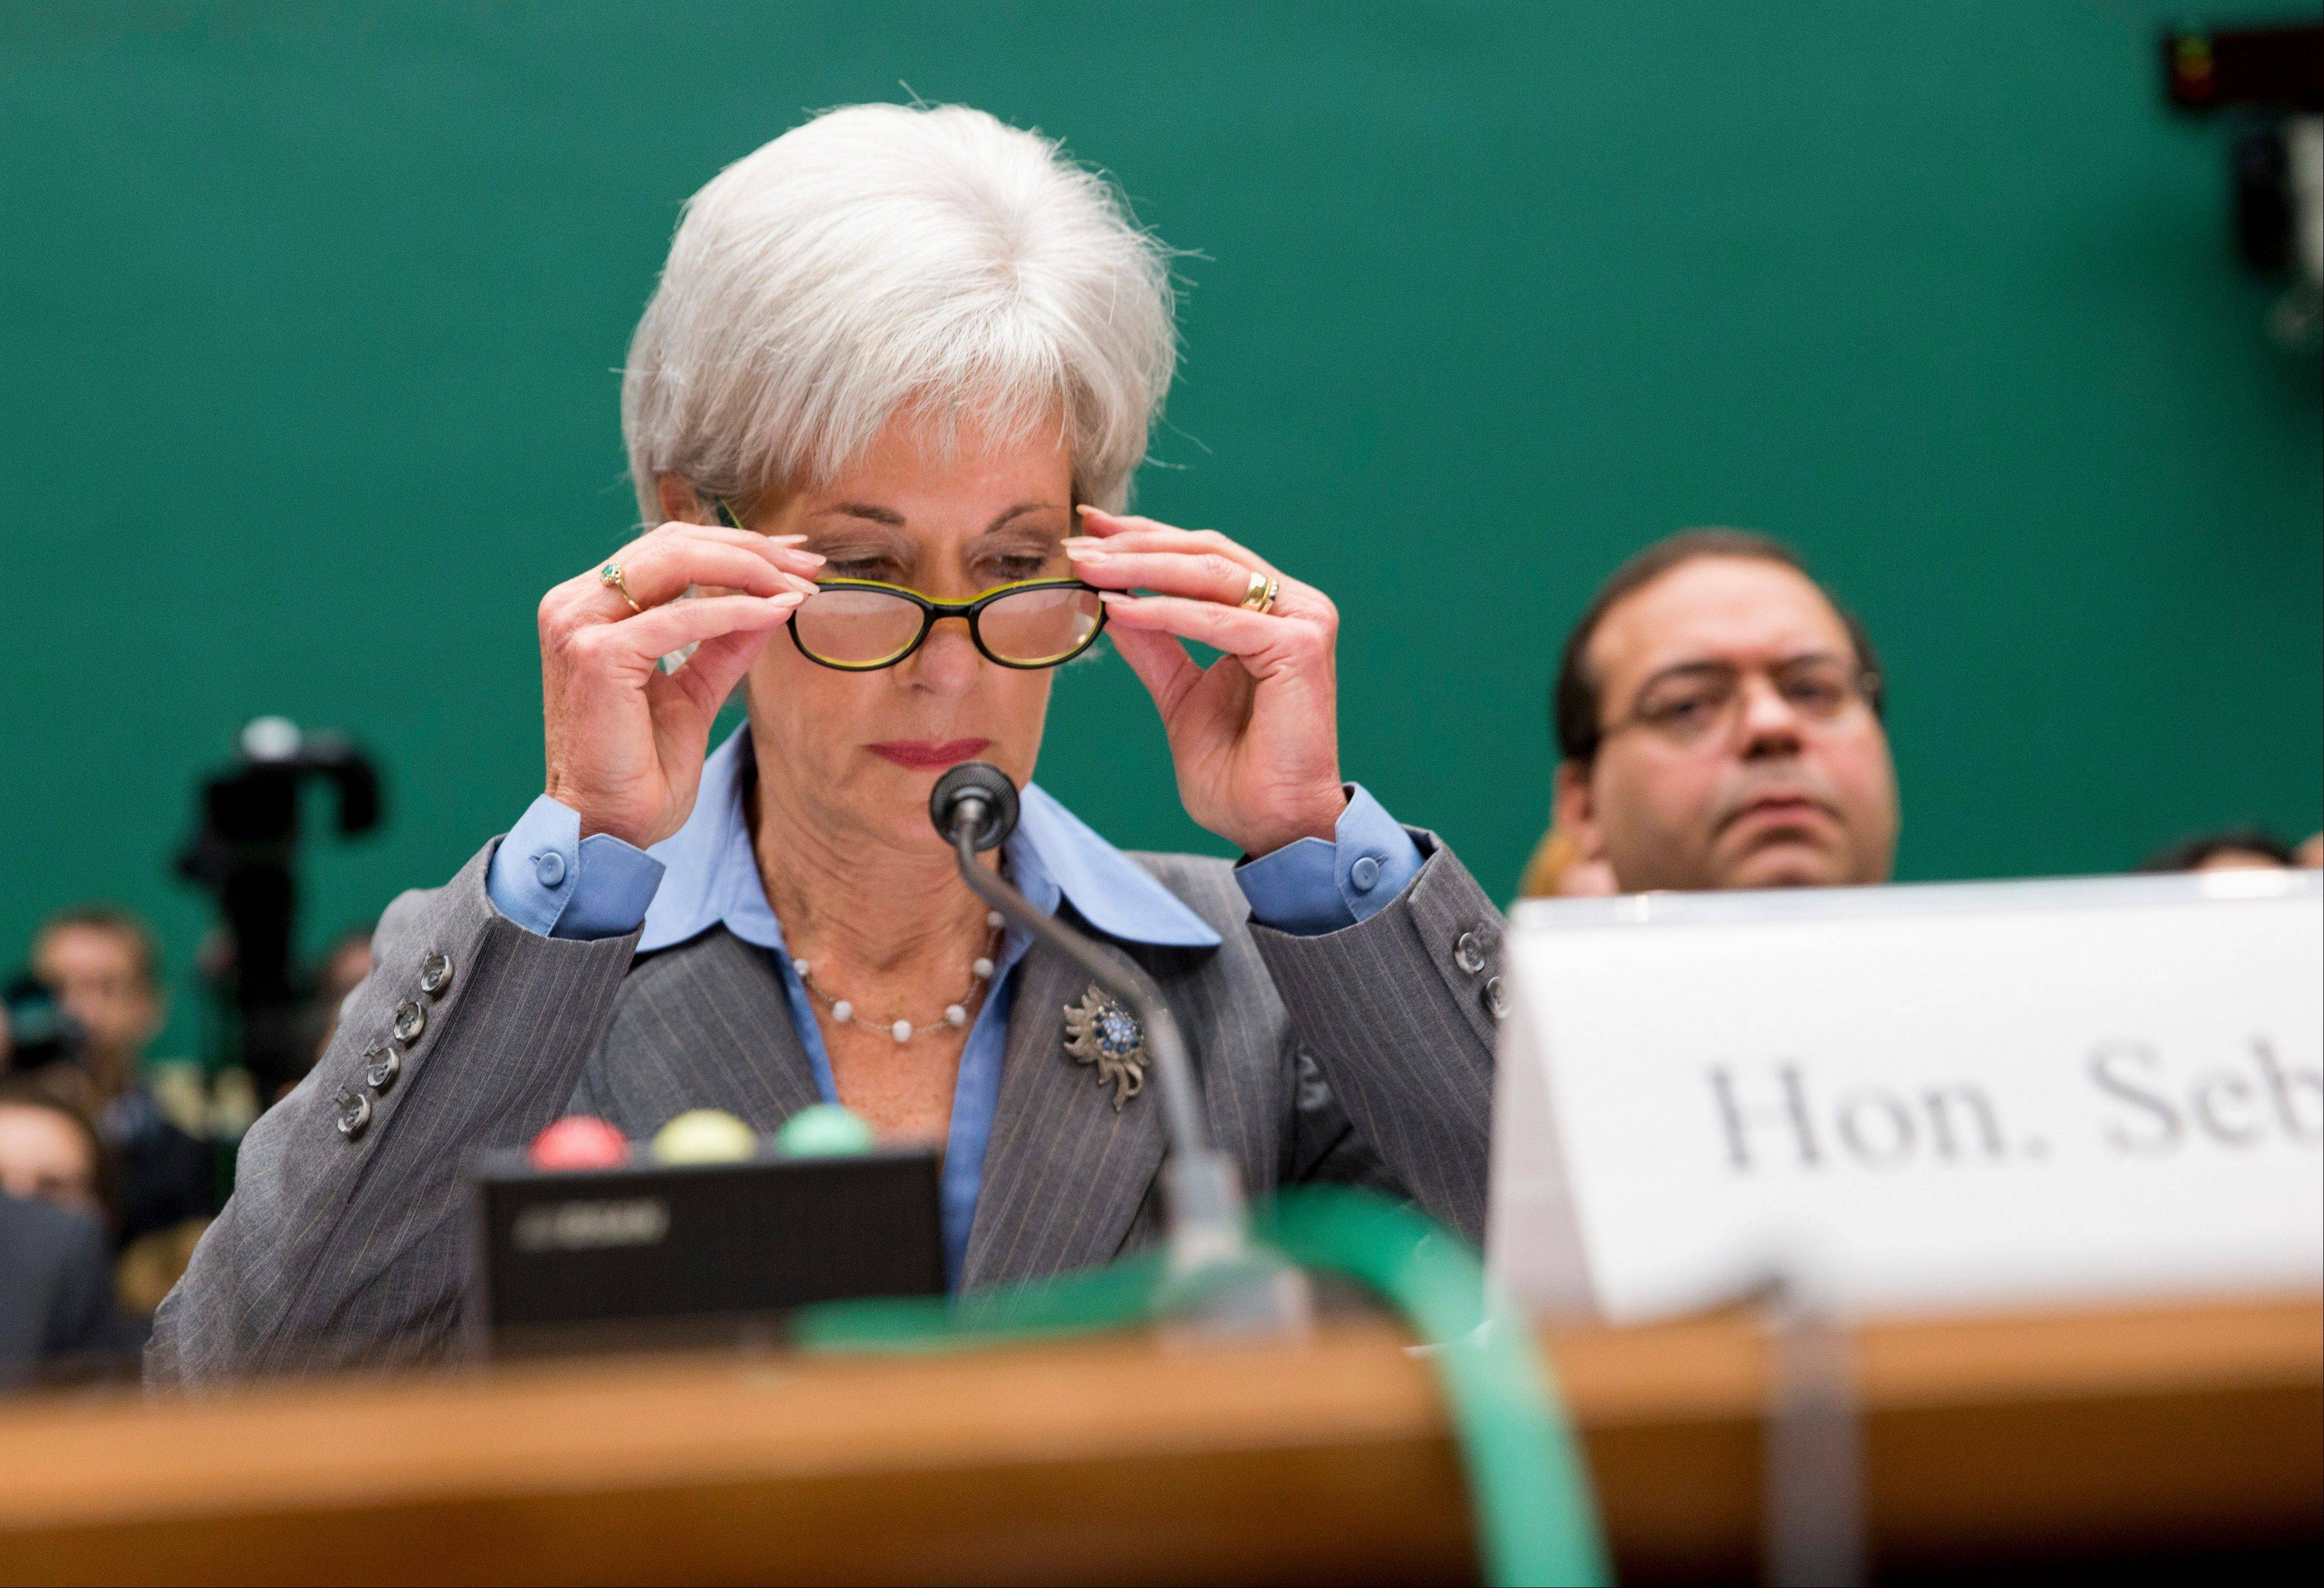 Health and Human Services Secretary Kathleen Sebelius, testifying on Capitol Hill Wednesday, apologized to consumers who have wasted so much time dealing with technical problems on the Obama administration's health insurance website.